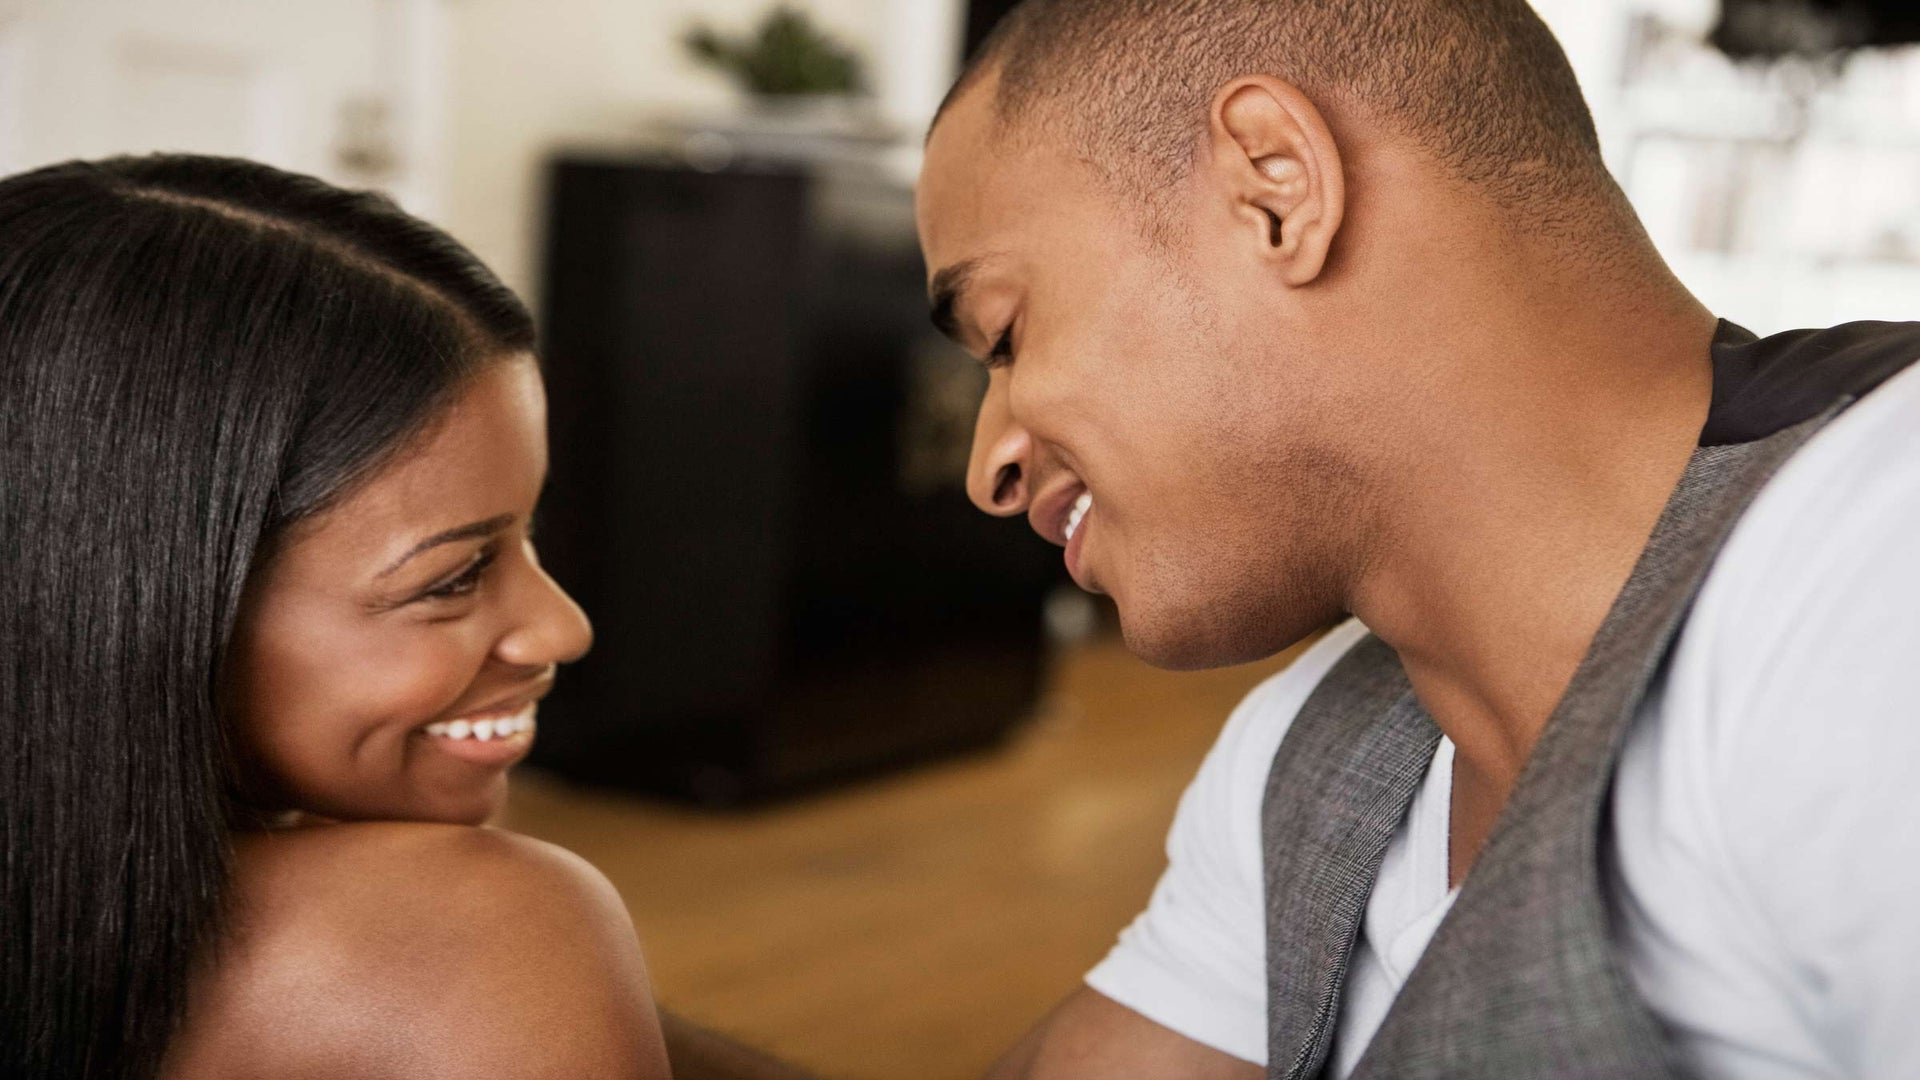 Modern Day Matchmaker: The 13 Things Men Find Sexiest About a Woman